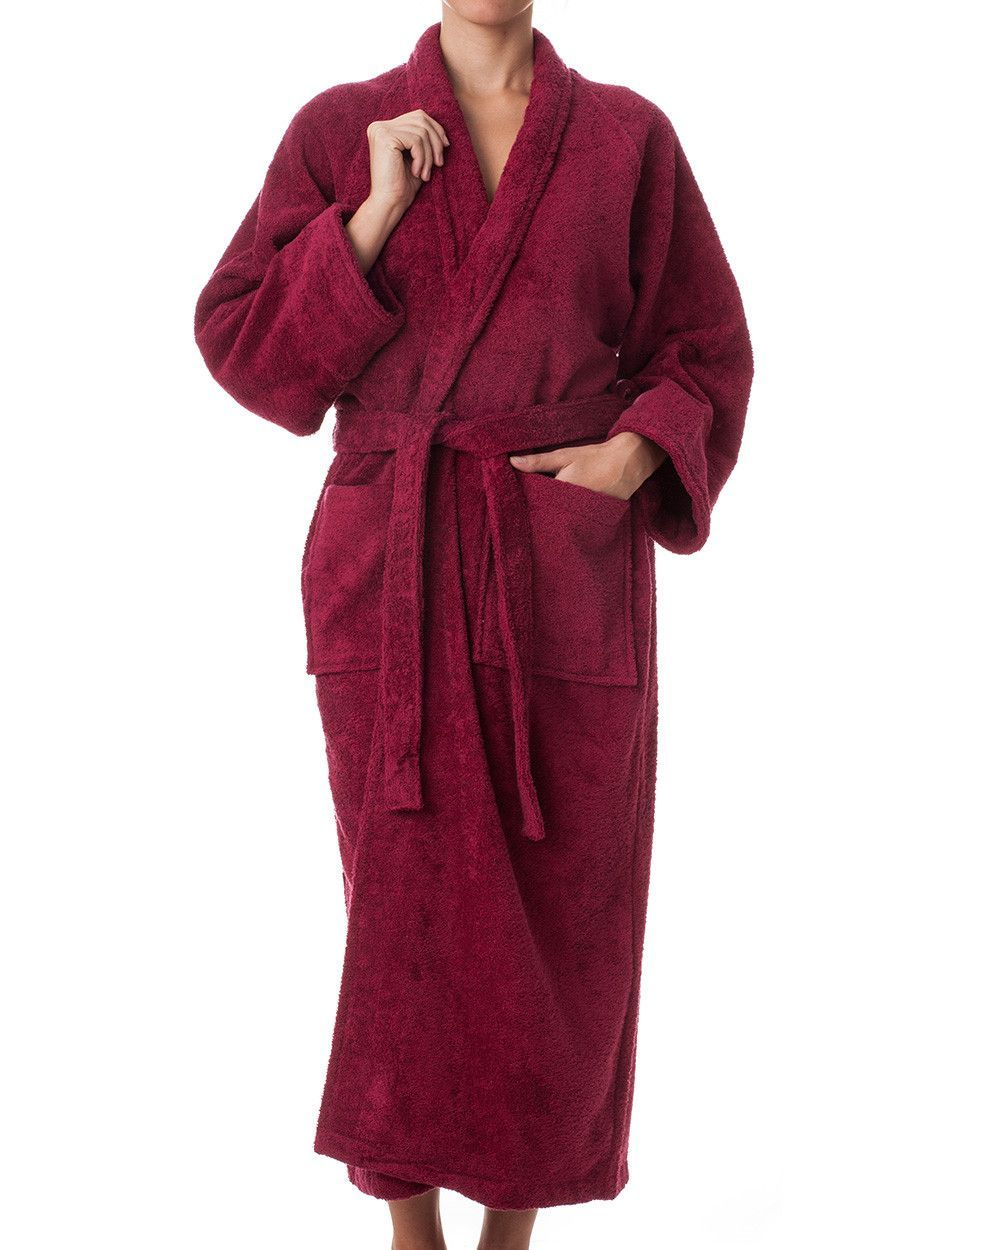 It S Been A Long Day And You Re Ready To Unwind Time Slip Into Your Luxury Robe Chill The Egyptian Terry Cloth Gives Spa Experience